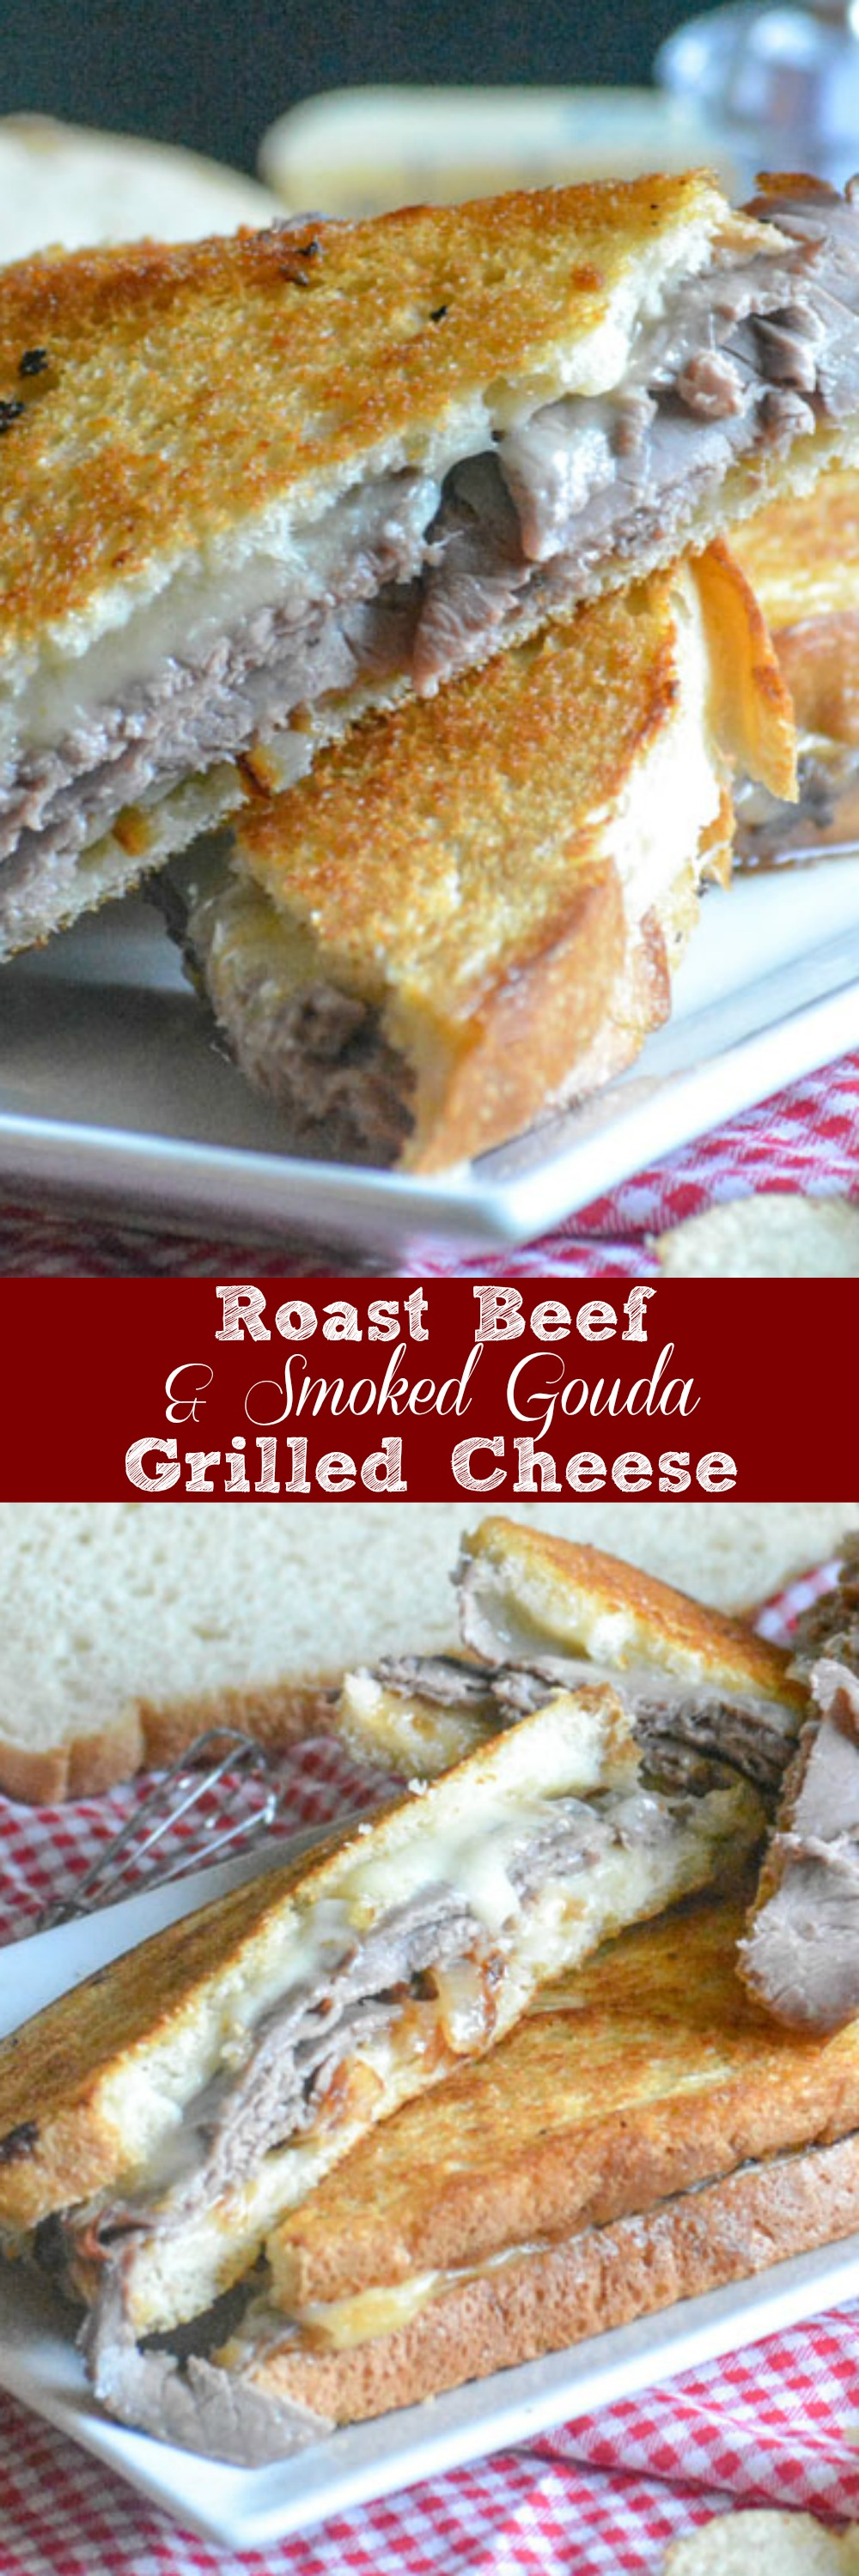 The grilled cheese you grew up with might not be enough to fill you up these days. No worries! This Roast Beef & Smoked Gouda Grilled cheese sandwich is hearty enough for the hungriest men in your life, whether it's lunch or dinner, and so good- that they might not believe you when you tell 'em it's homemade.